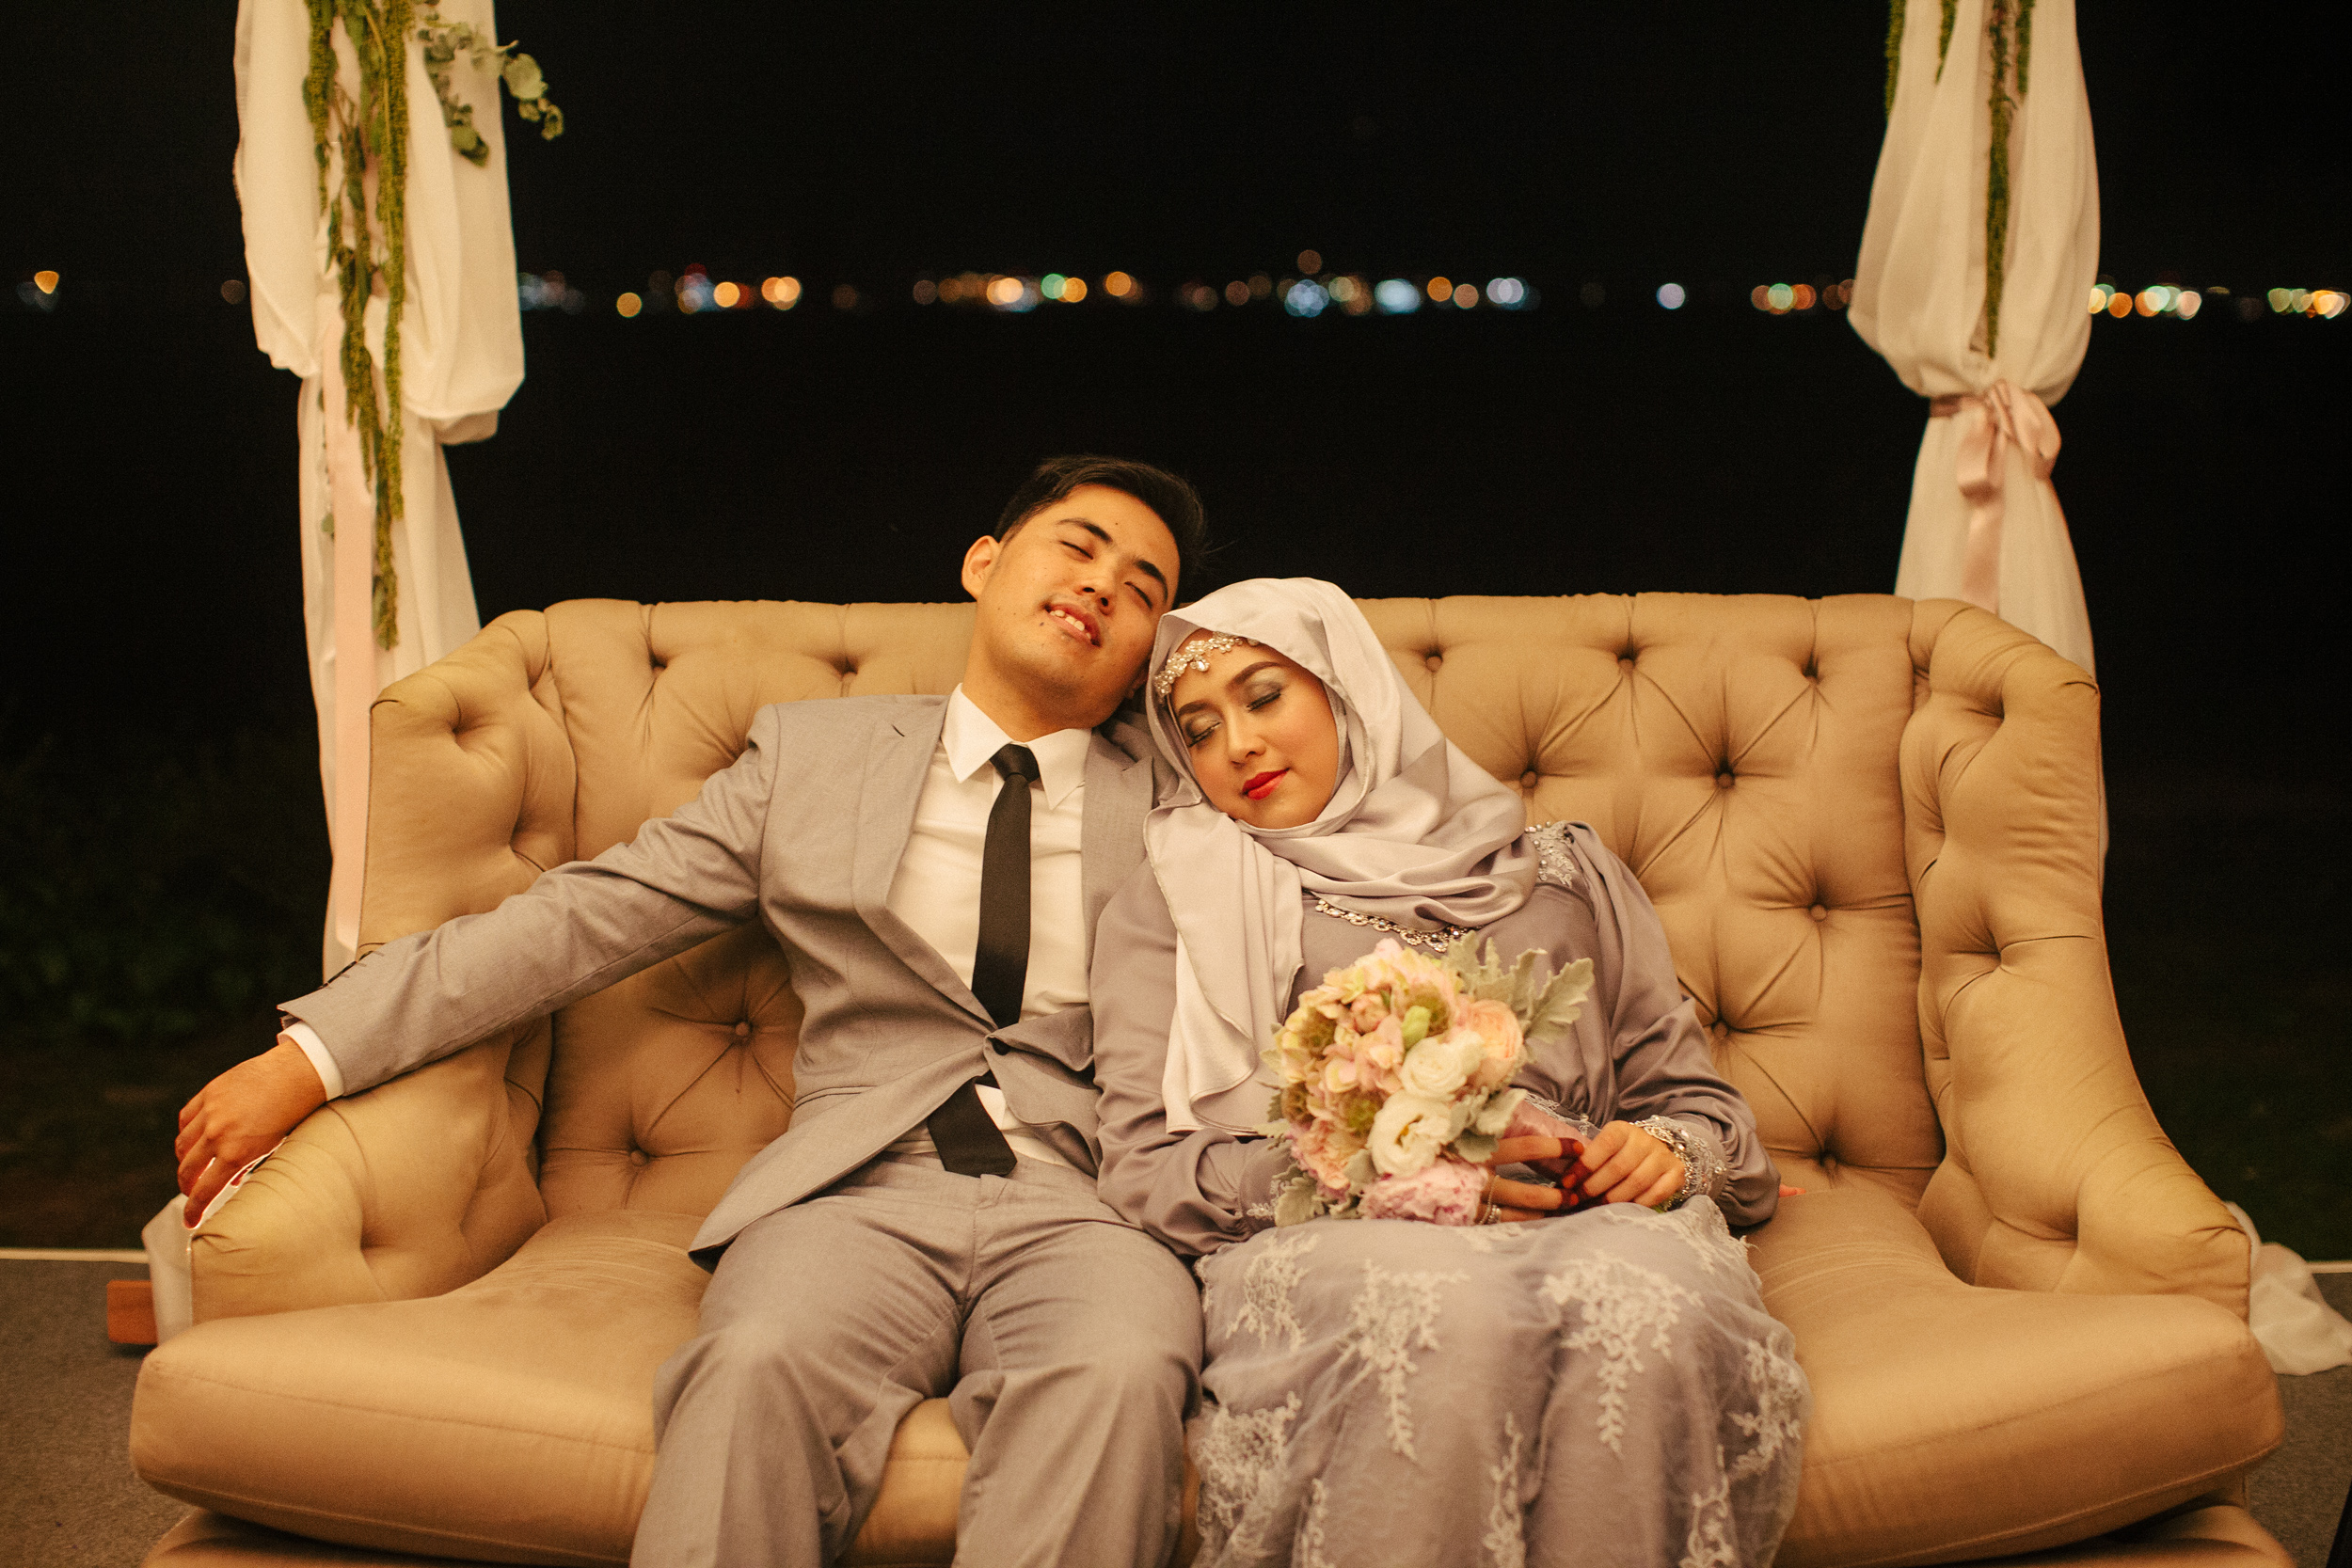 singapore-wedding-photographer-wemadethese-aisyah-helmi-83.jpg